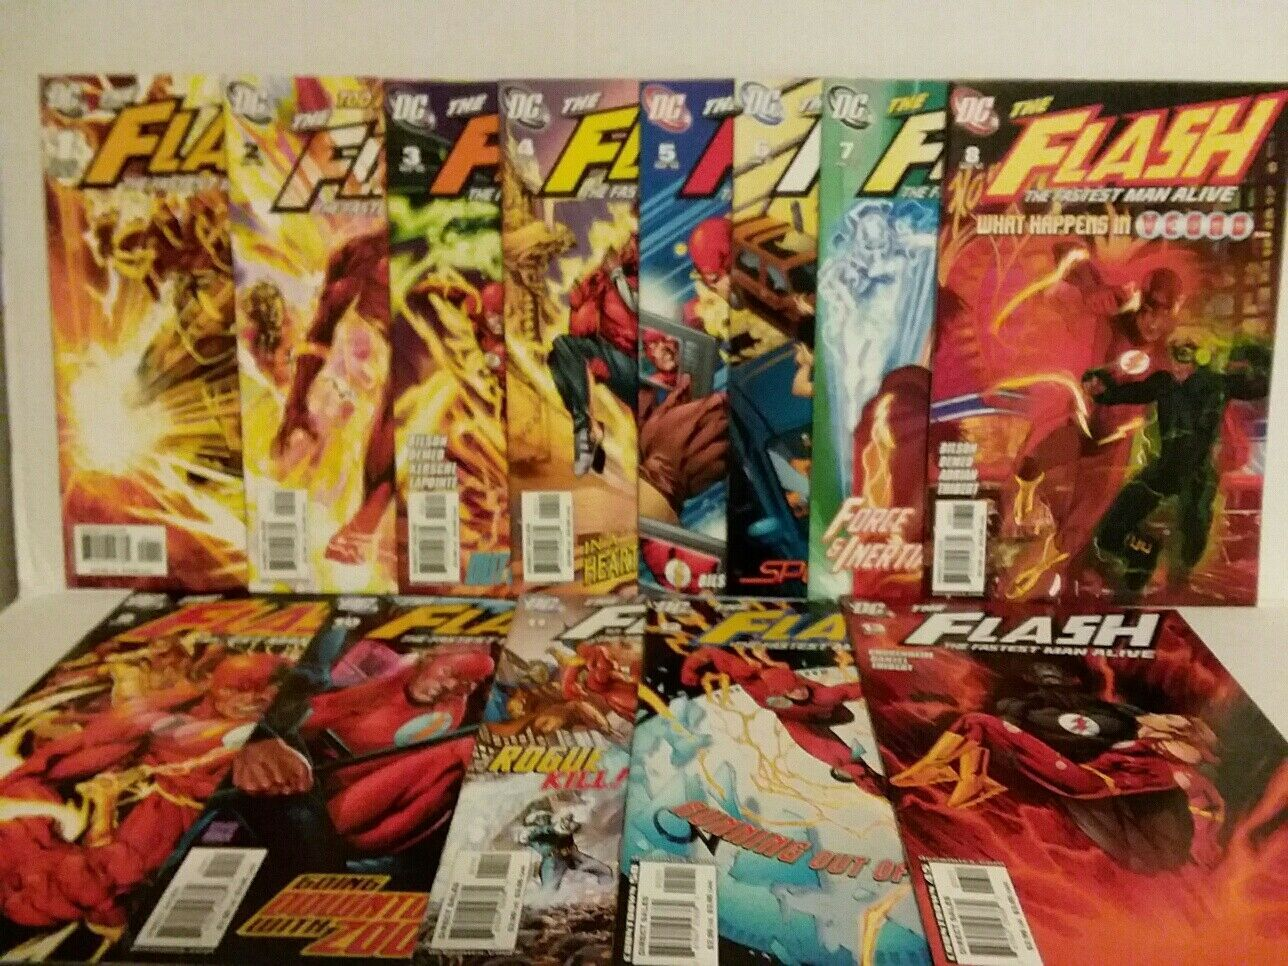 THE FLASH #1 - 13 2006 RUN - BART ALLEN - FREE SHIPPING